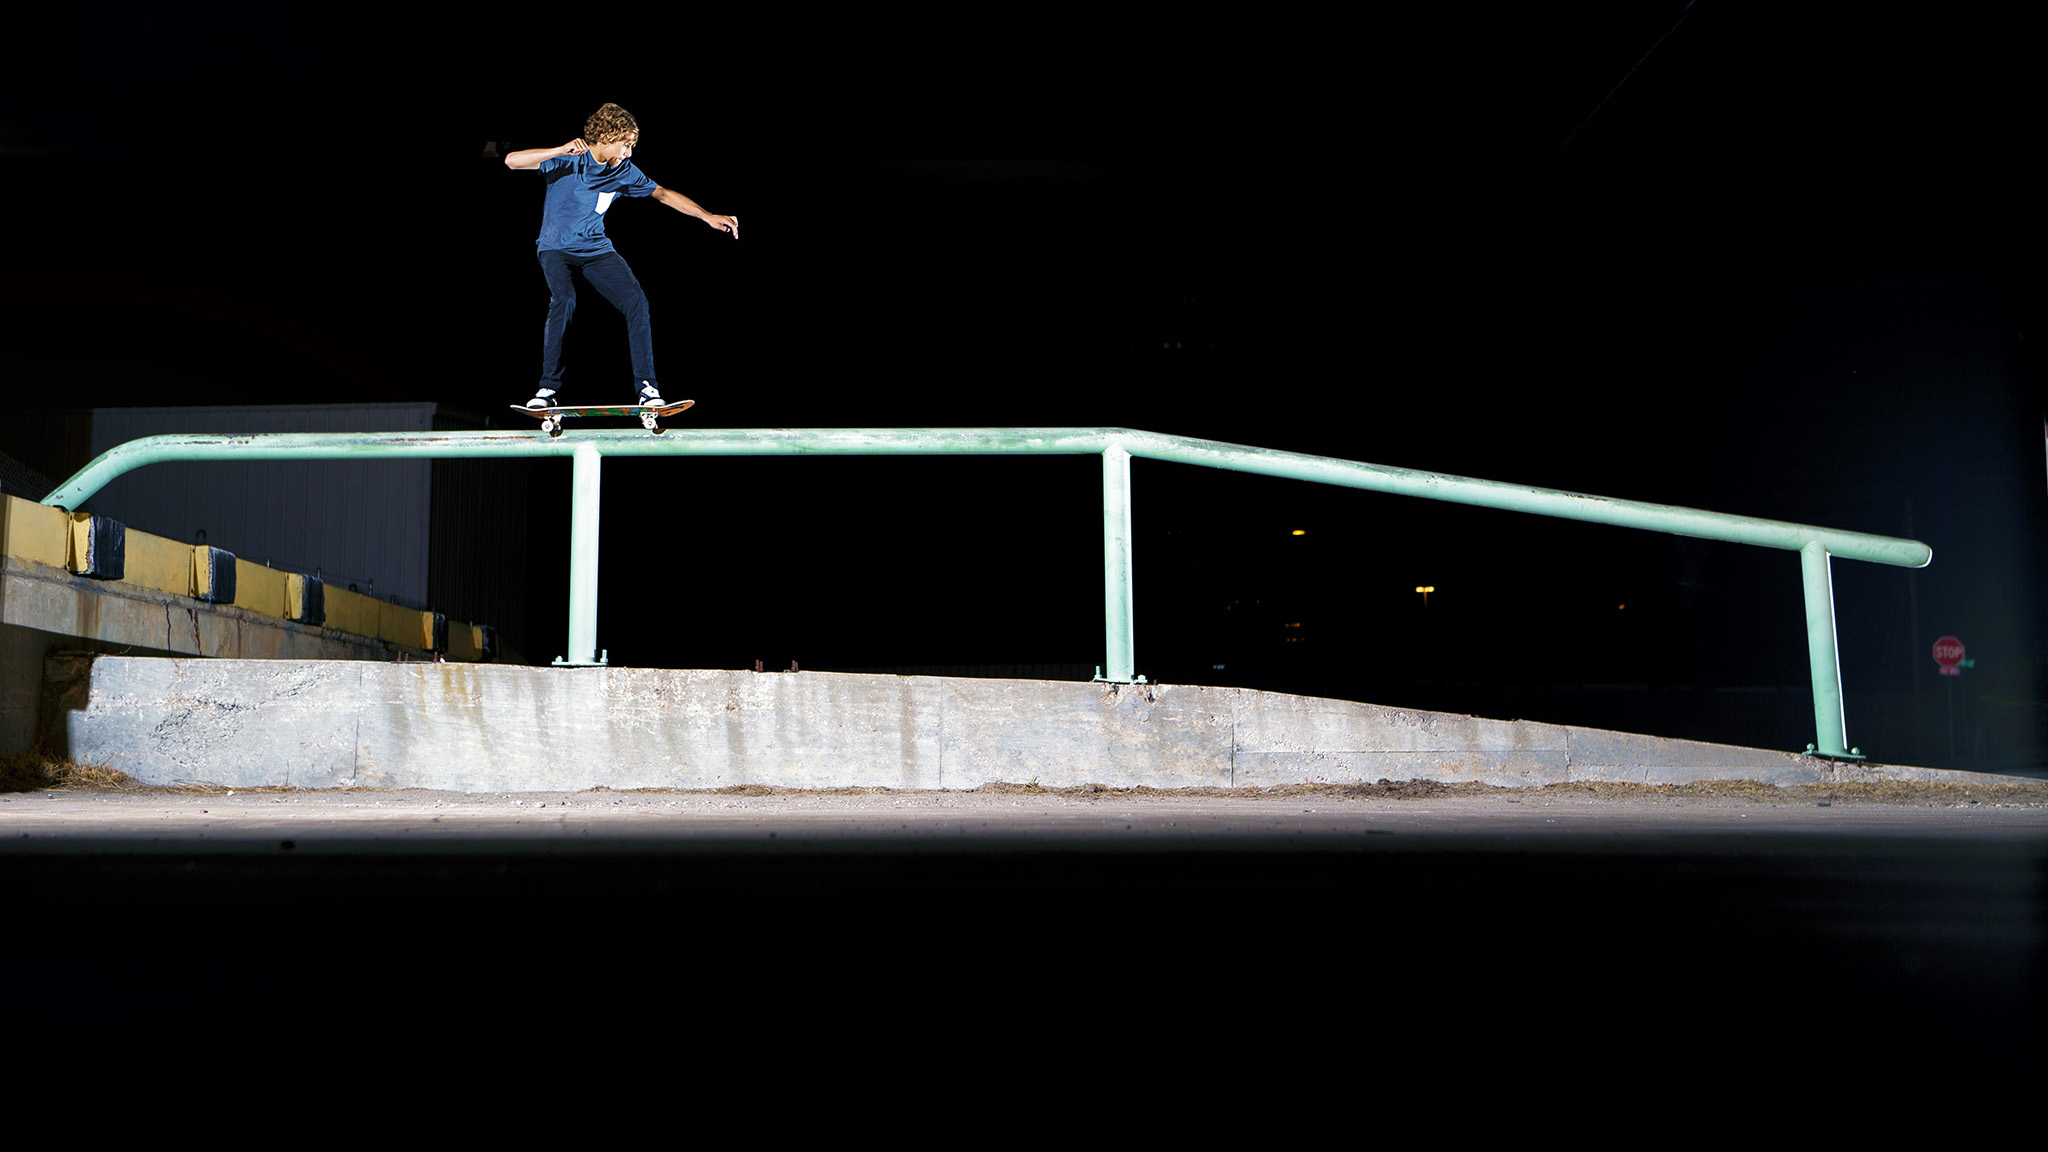 Skateboarding in 2013 -- the year in review